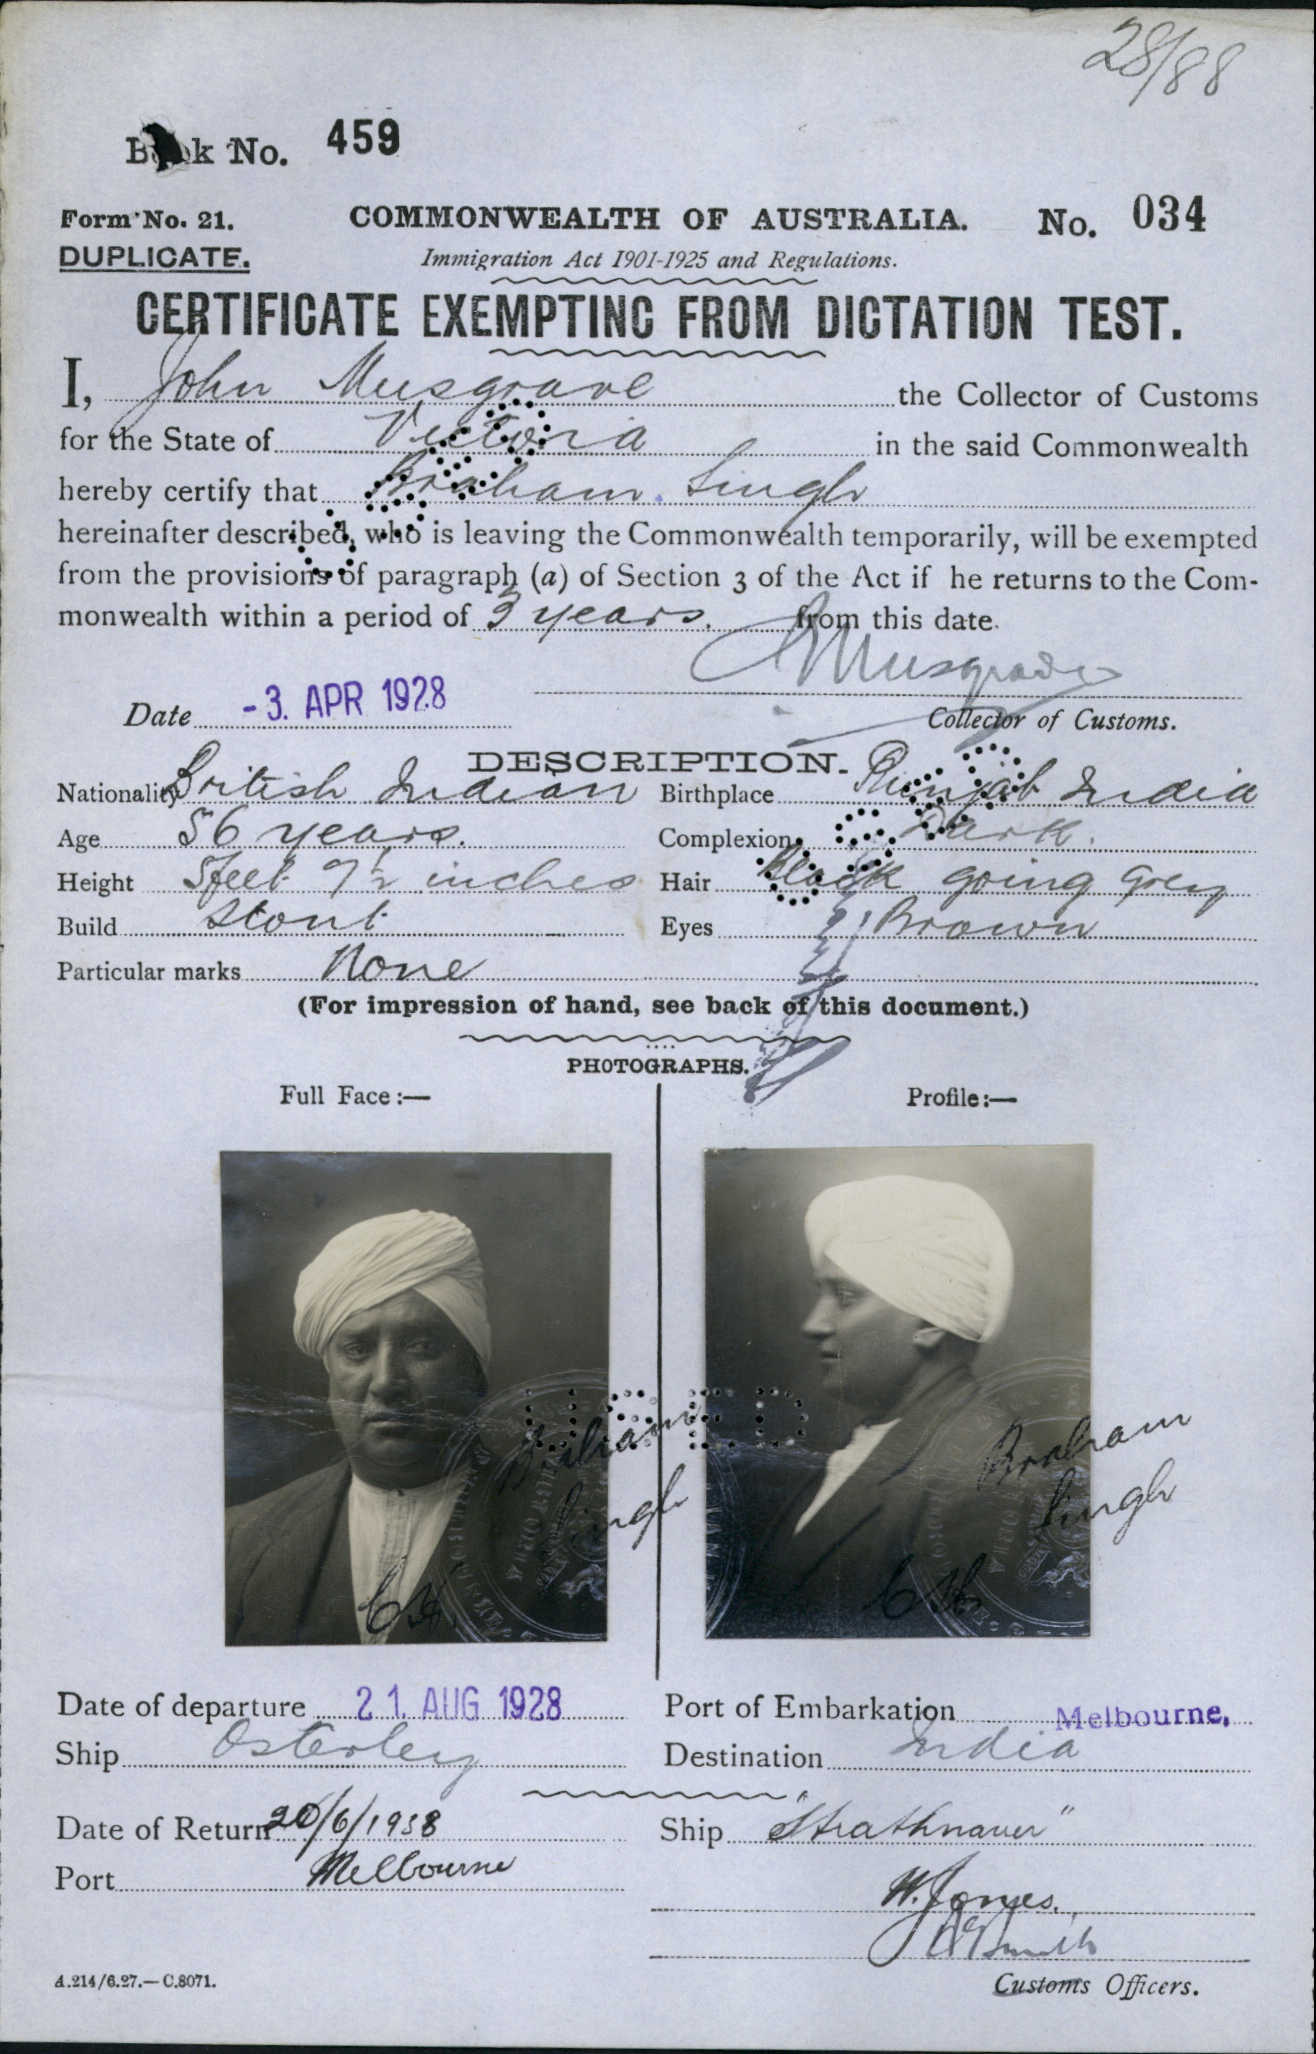 Braham Singh CEDT 1928 Courtesy Of NAA